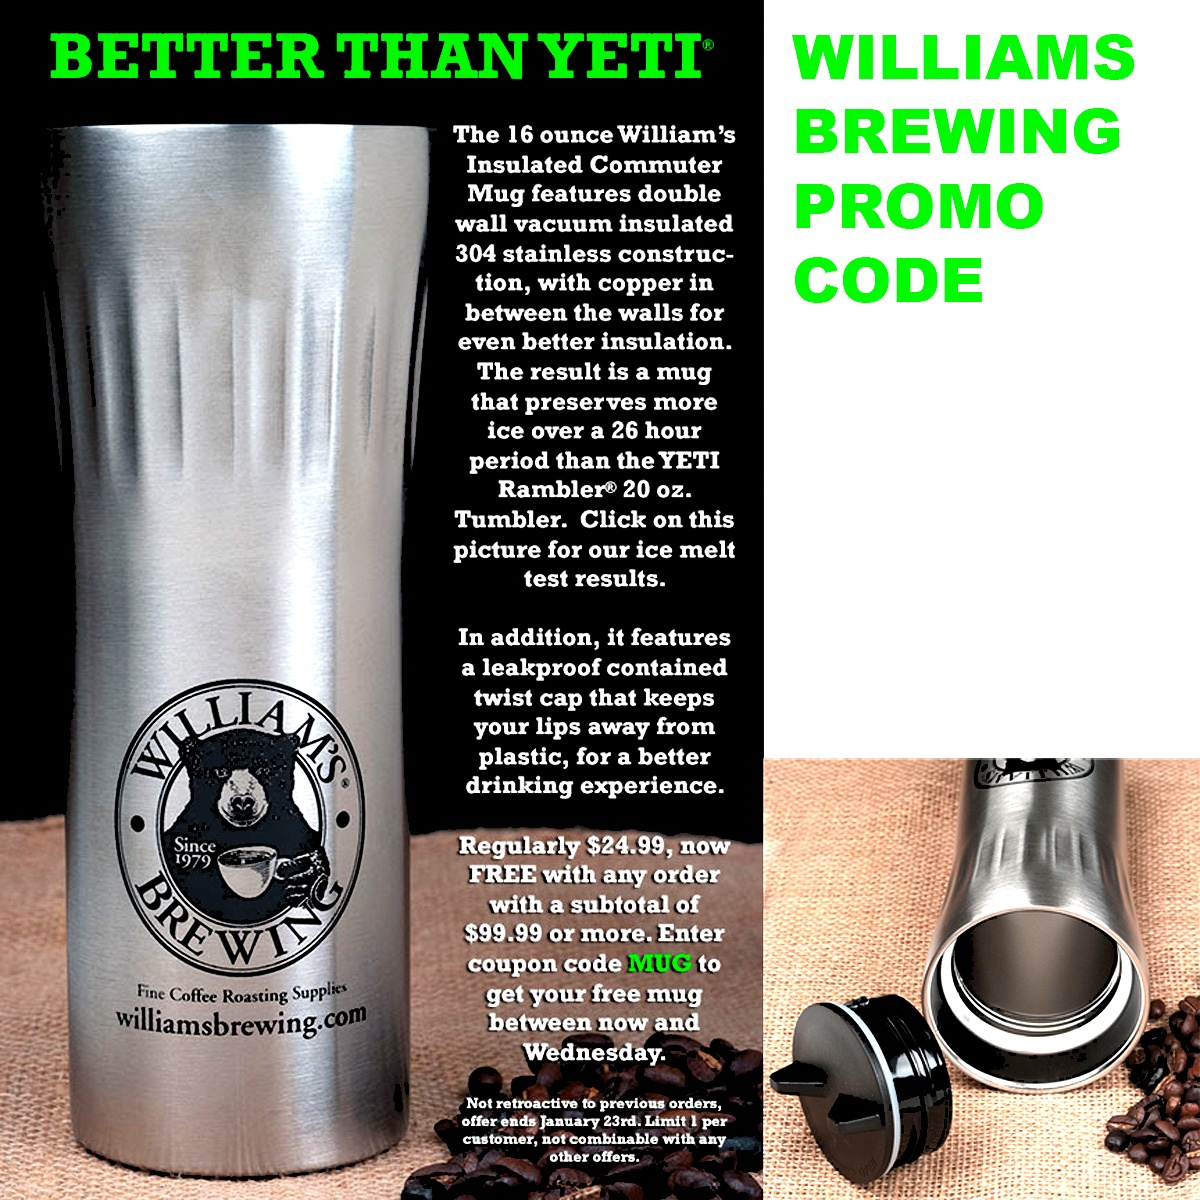 Free Stainless Steel Beer Mug Promo Code from Williamsbrewing.com